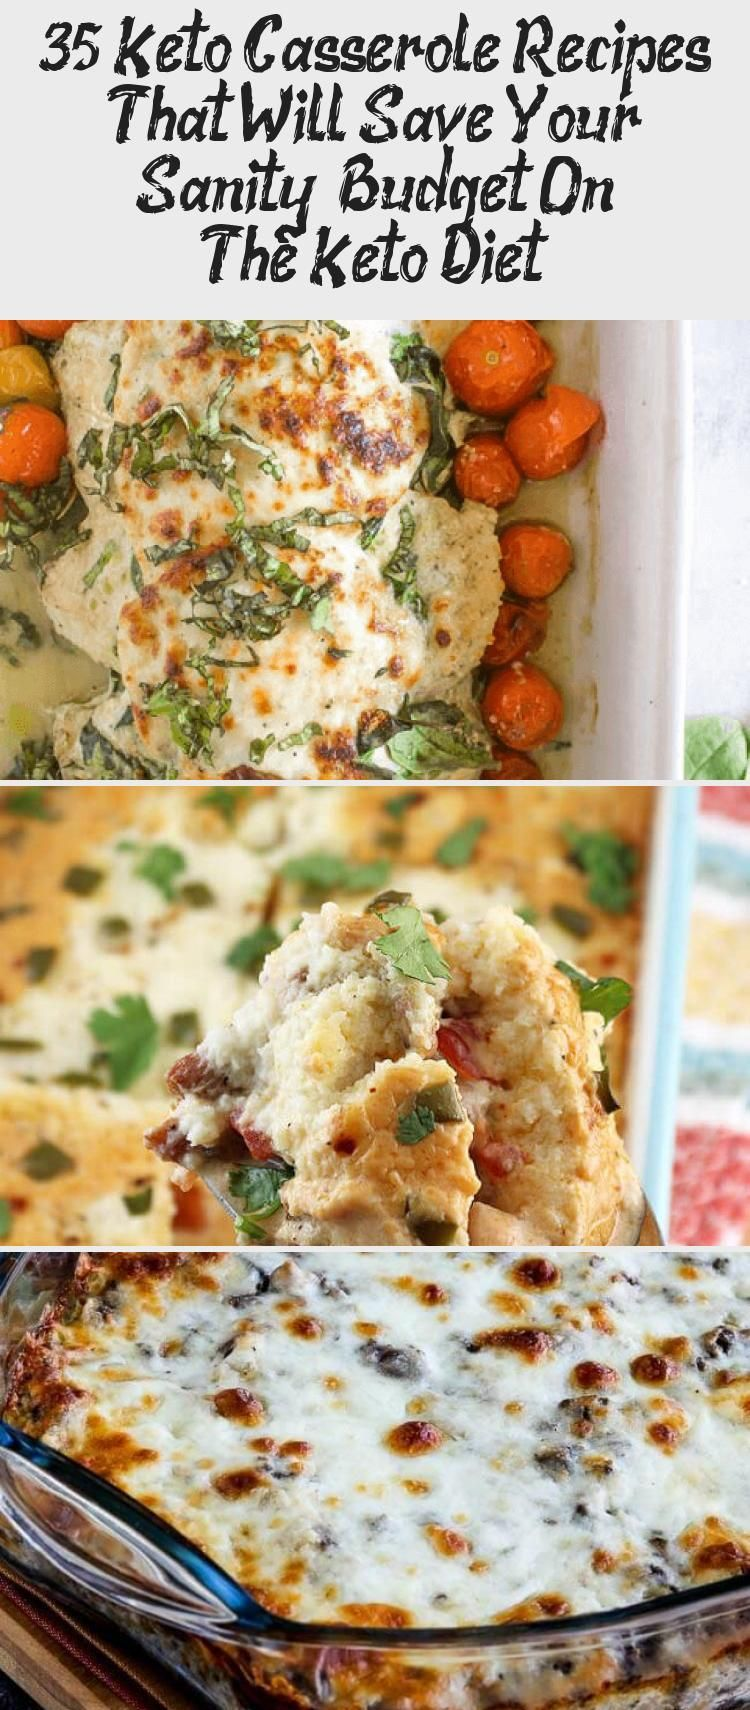 35 Keto Casserole Recipes That Will Save Your Sanity & Budget On The Keto Diet – Keto